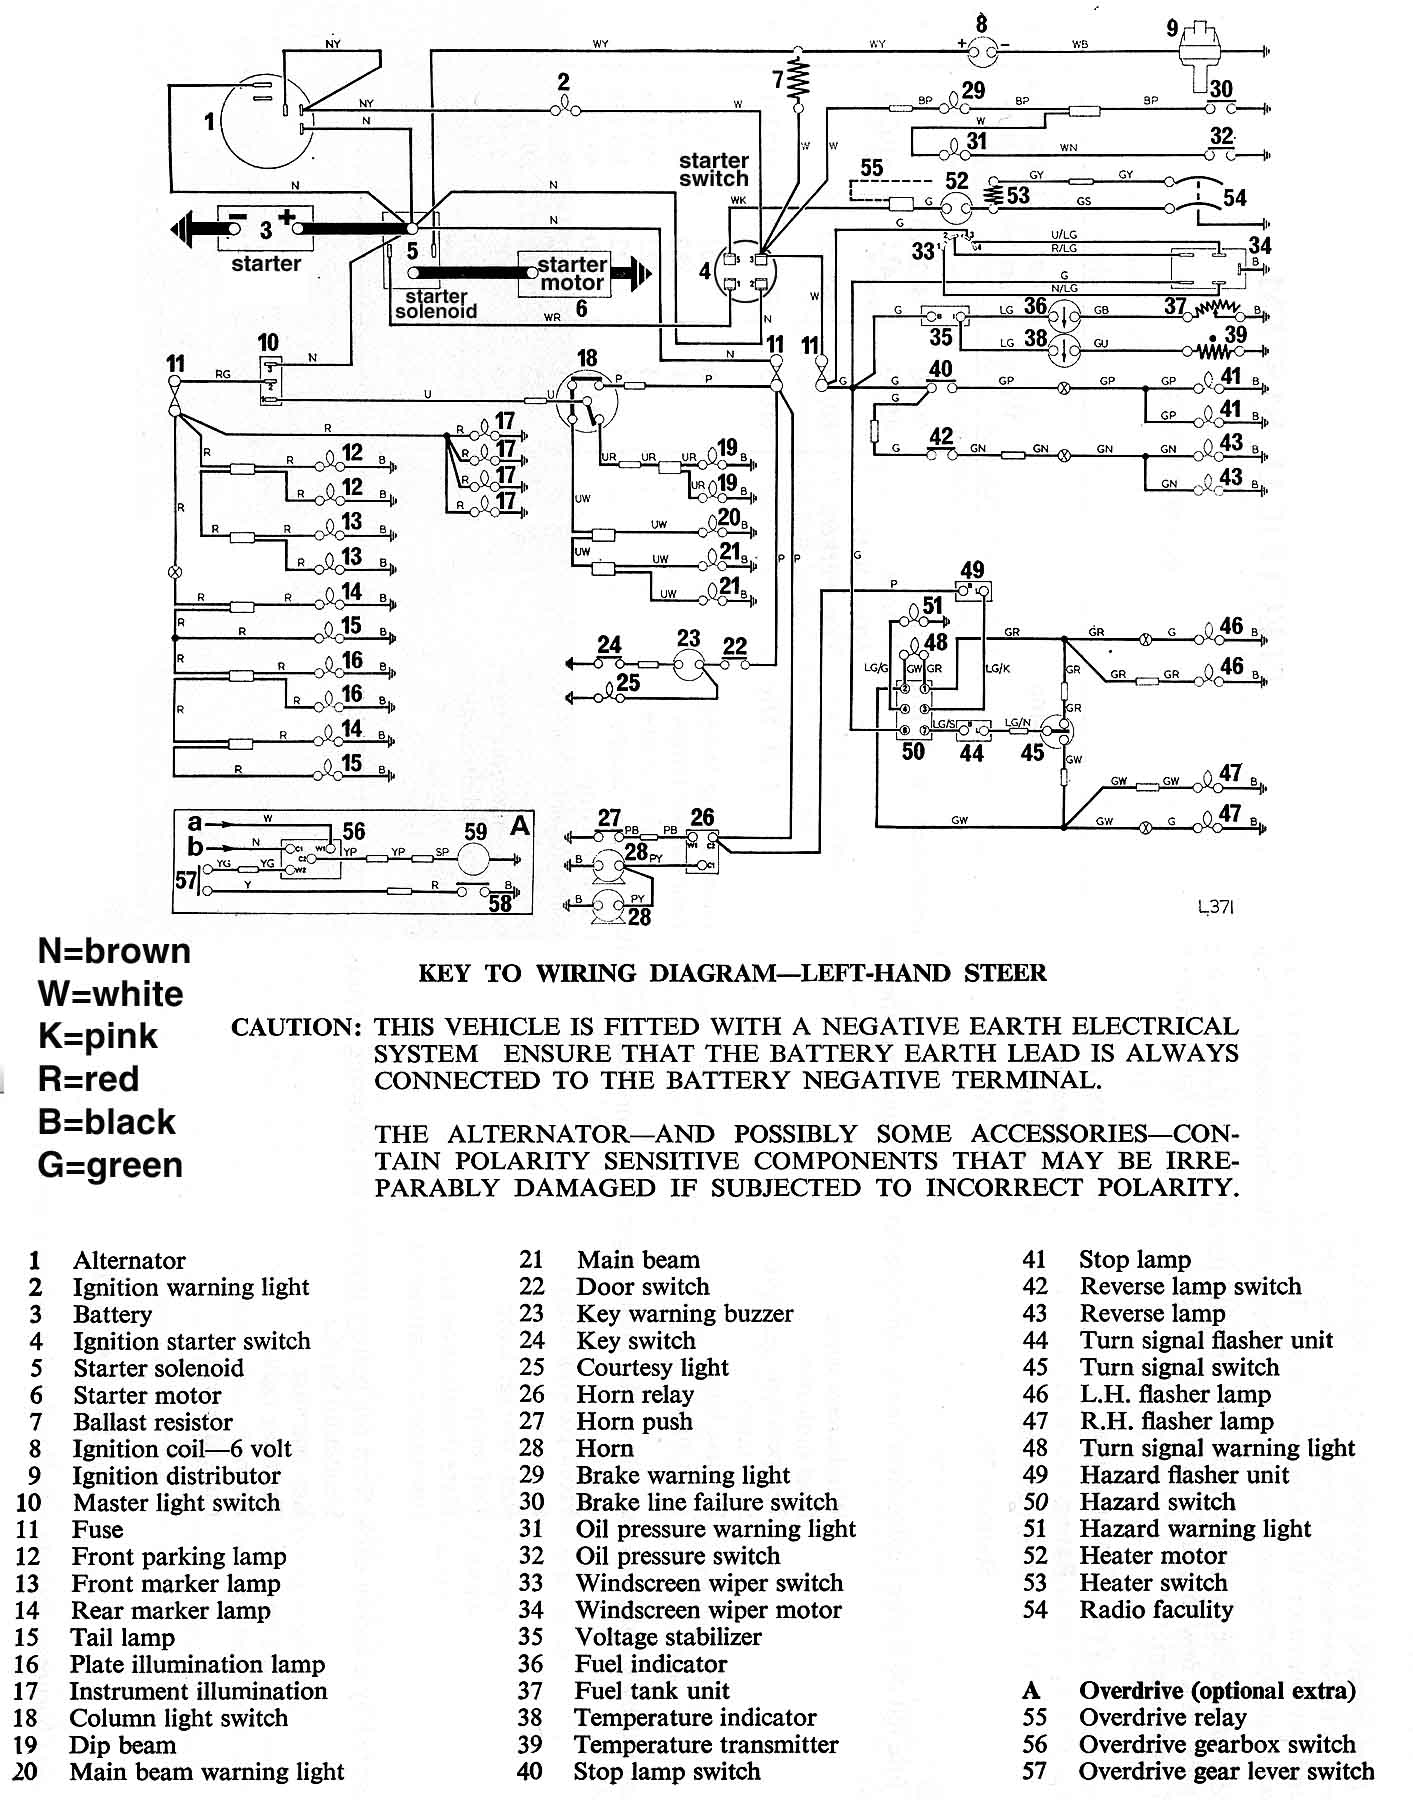 MKIVwire mk4 wiring diagram mk4 tdi wiring diagram \u2022 wiring diagrams j  at fashall.co